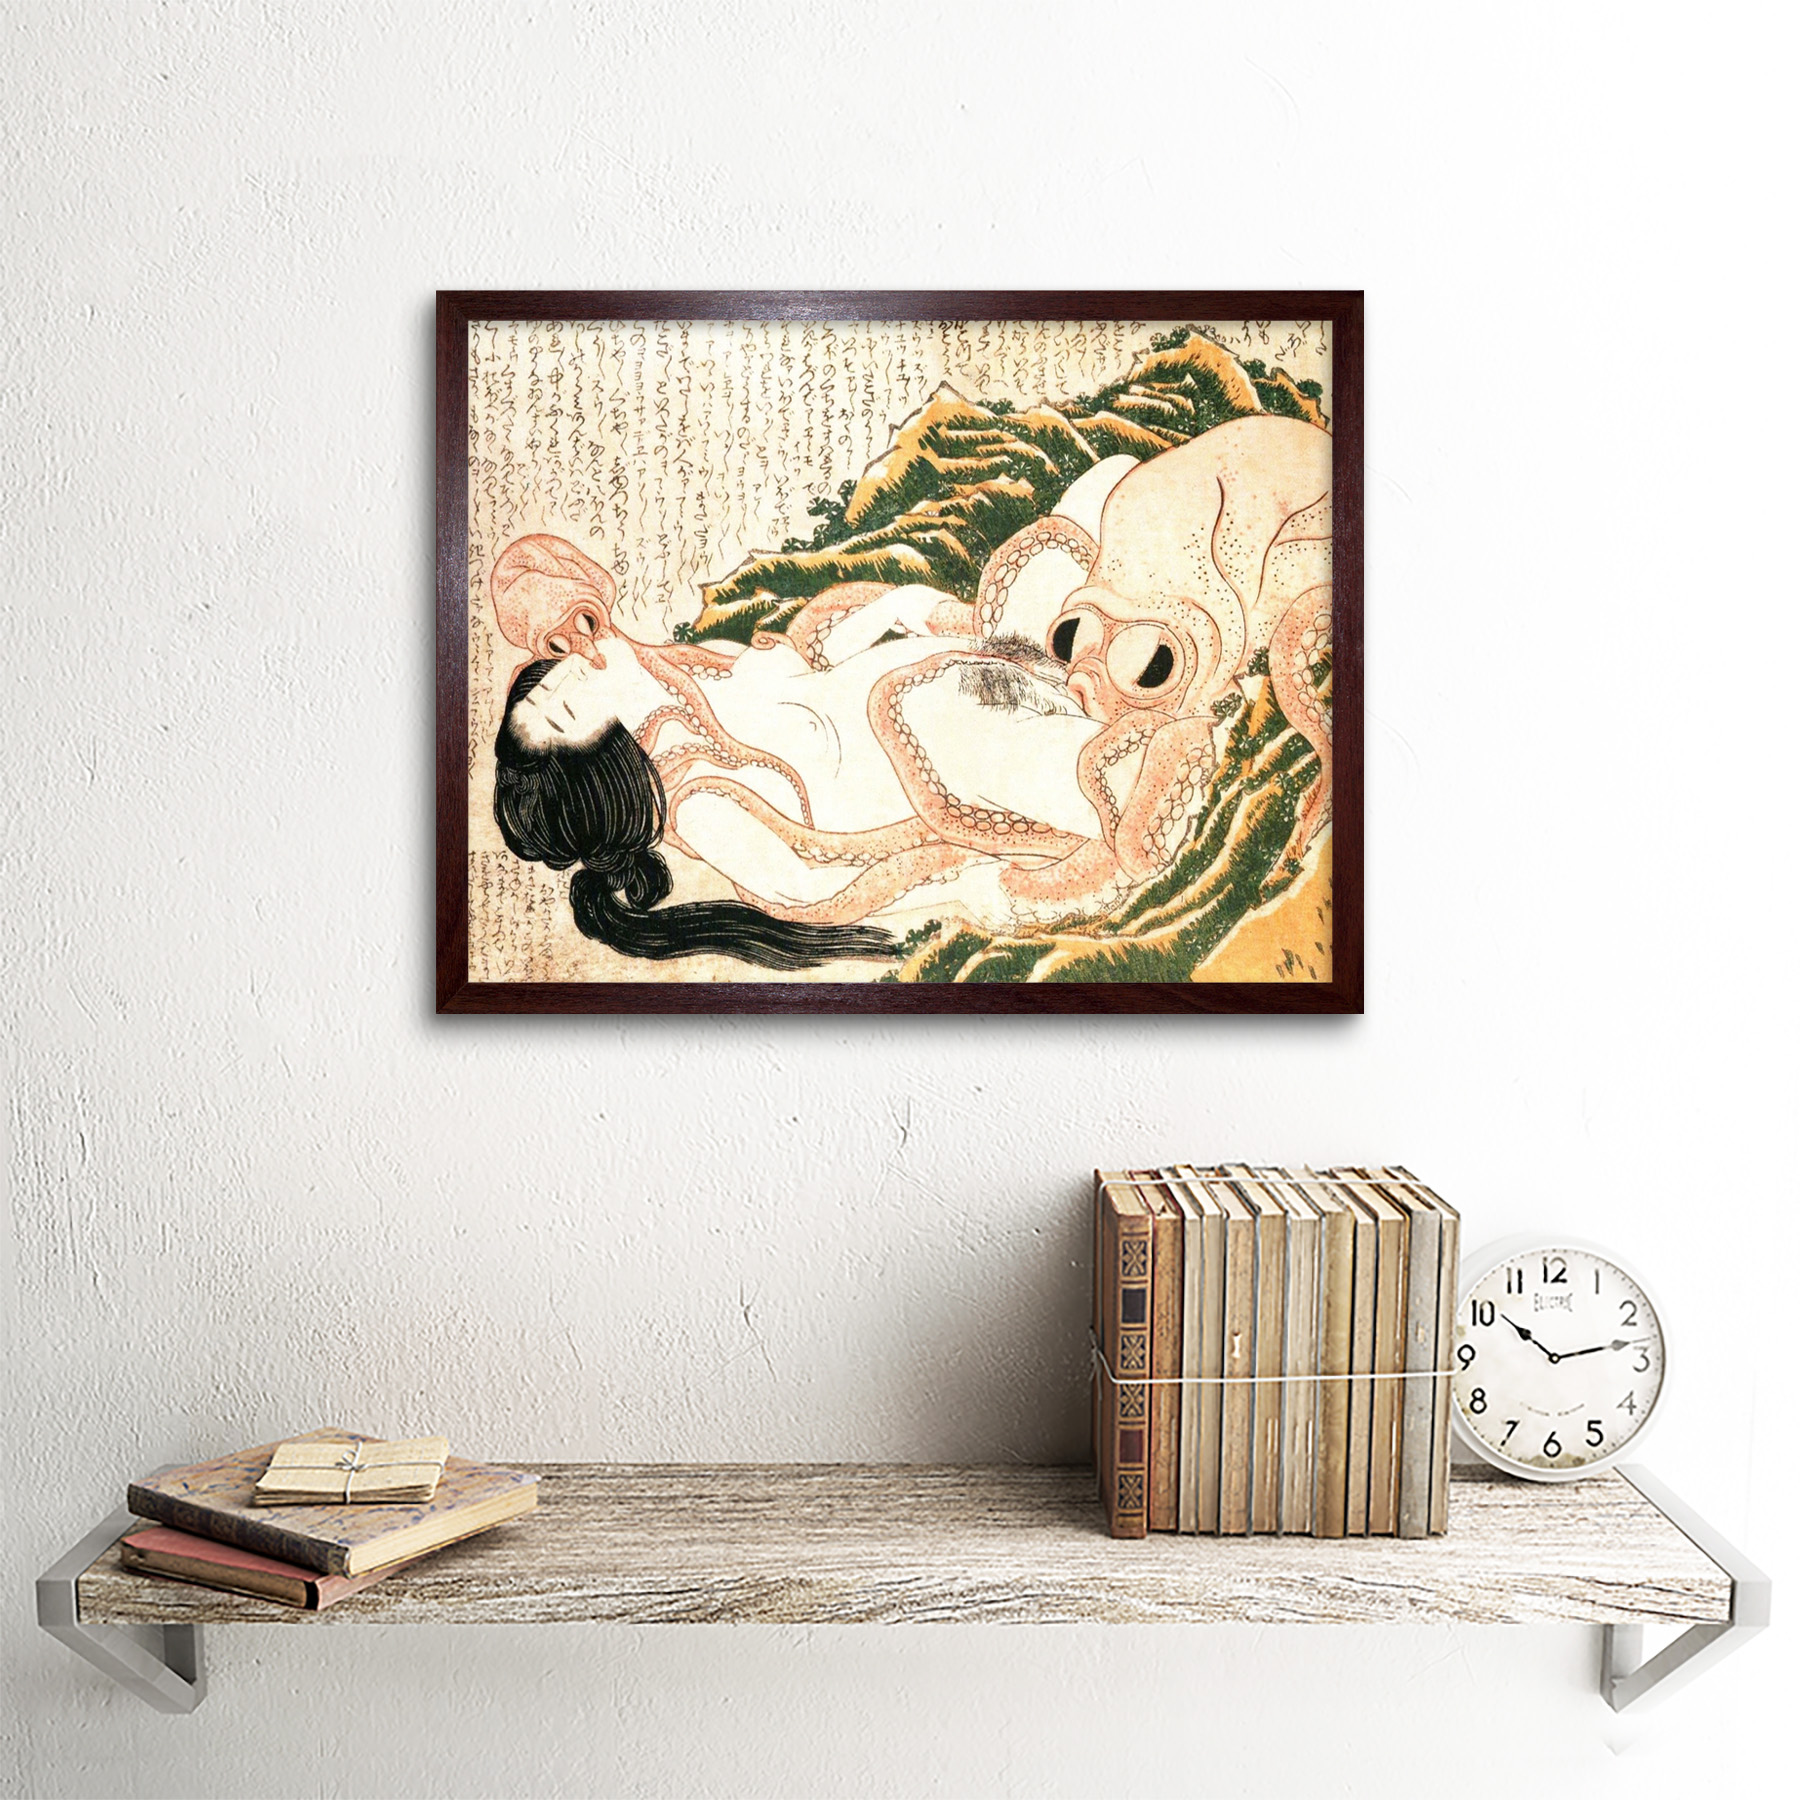 thumbnail 8 - Hokusai-Octopus-Fishermans-Wife-Dreams-Adult-Japanese-Art-Print-Framed-12x16